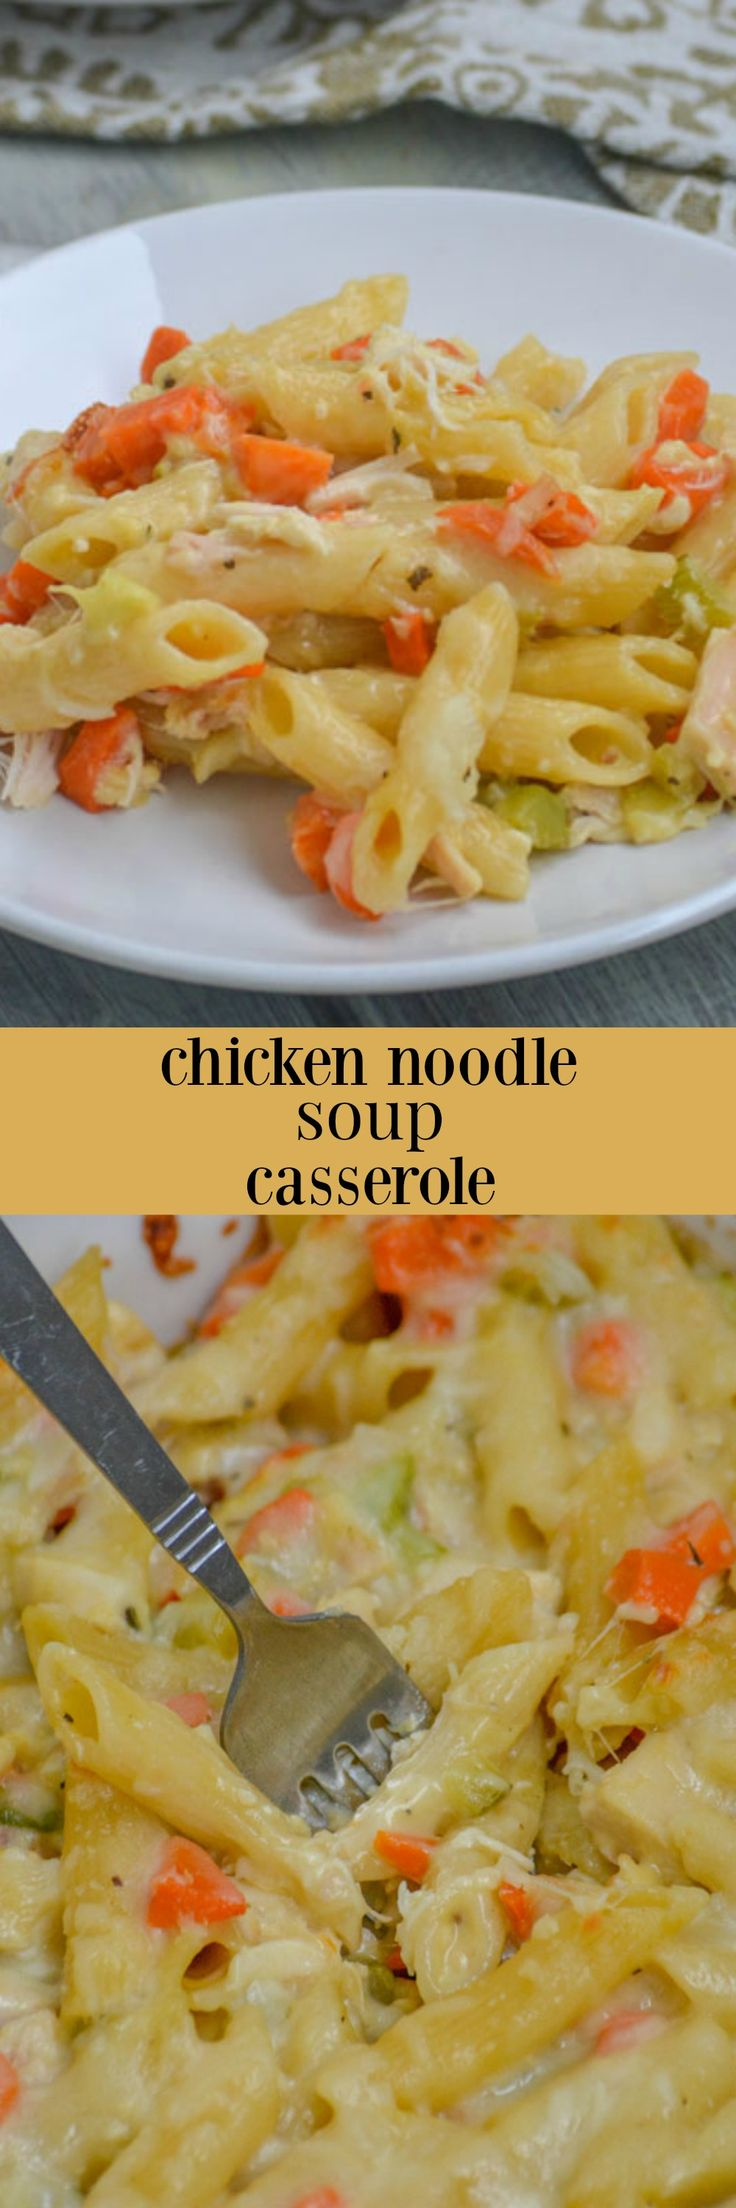 Chicken Noodle Soup Casserole | This creamy, cheesy Chicken Noodle Soup Casserole is the magical, home made (with love) cure for whatever ails you. Serve up a warm bowlful for lunch or dinner, and send your worries packin'! | 4 Sons 'R' Us